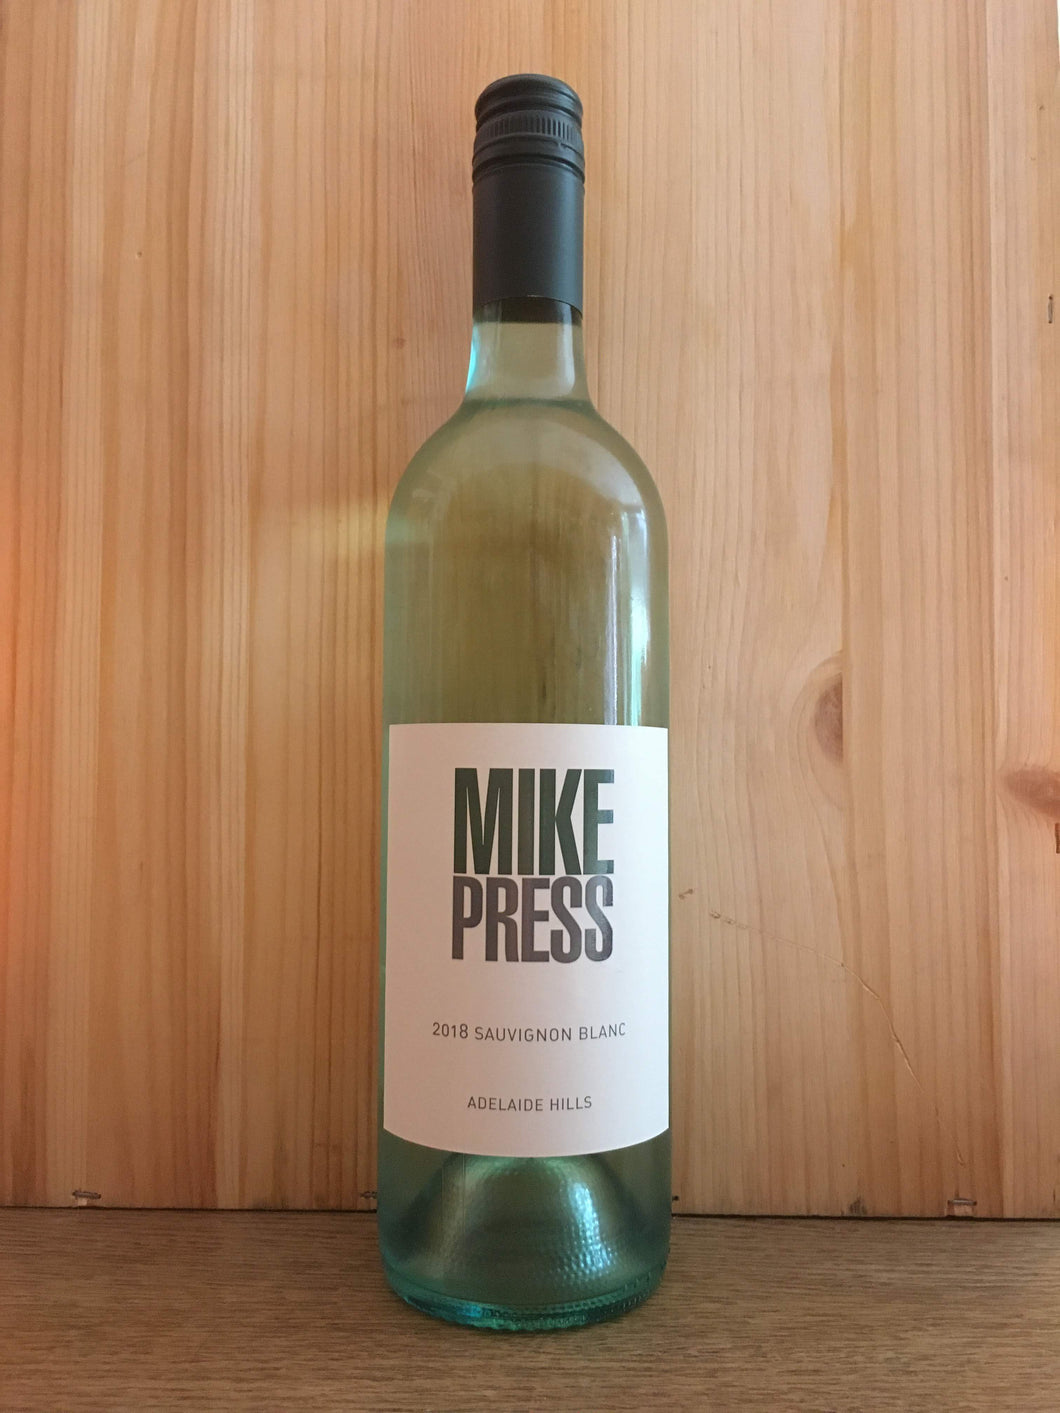 Mike Press Sauvignon Blanc 2018